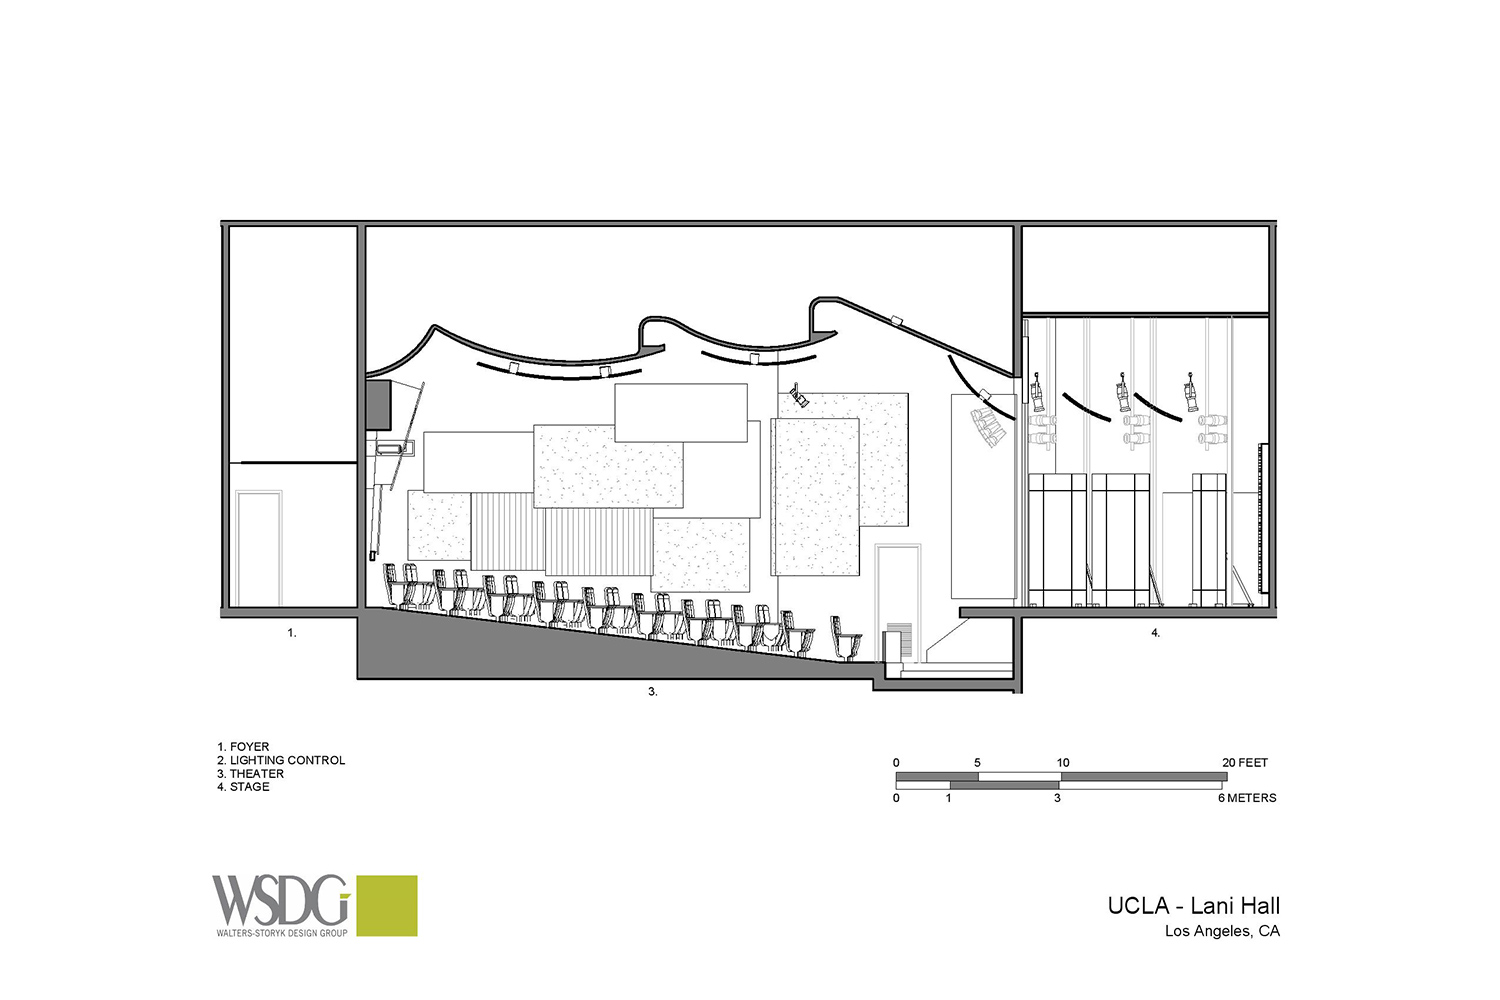 The Herb Alpert Foundation engaged WSDG to design the acoustics for a small on-campus live performance theater at the prestigious UCLA, with help of Lani Hall. Presentation drawing 2.